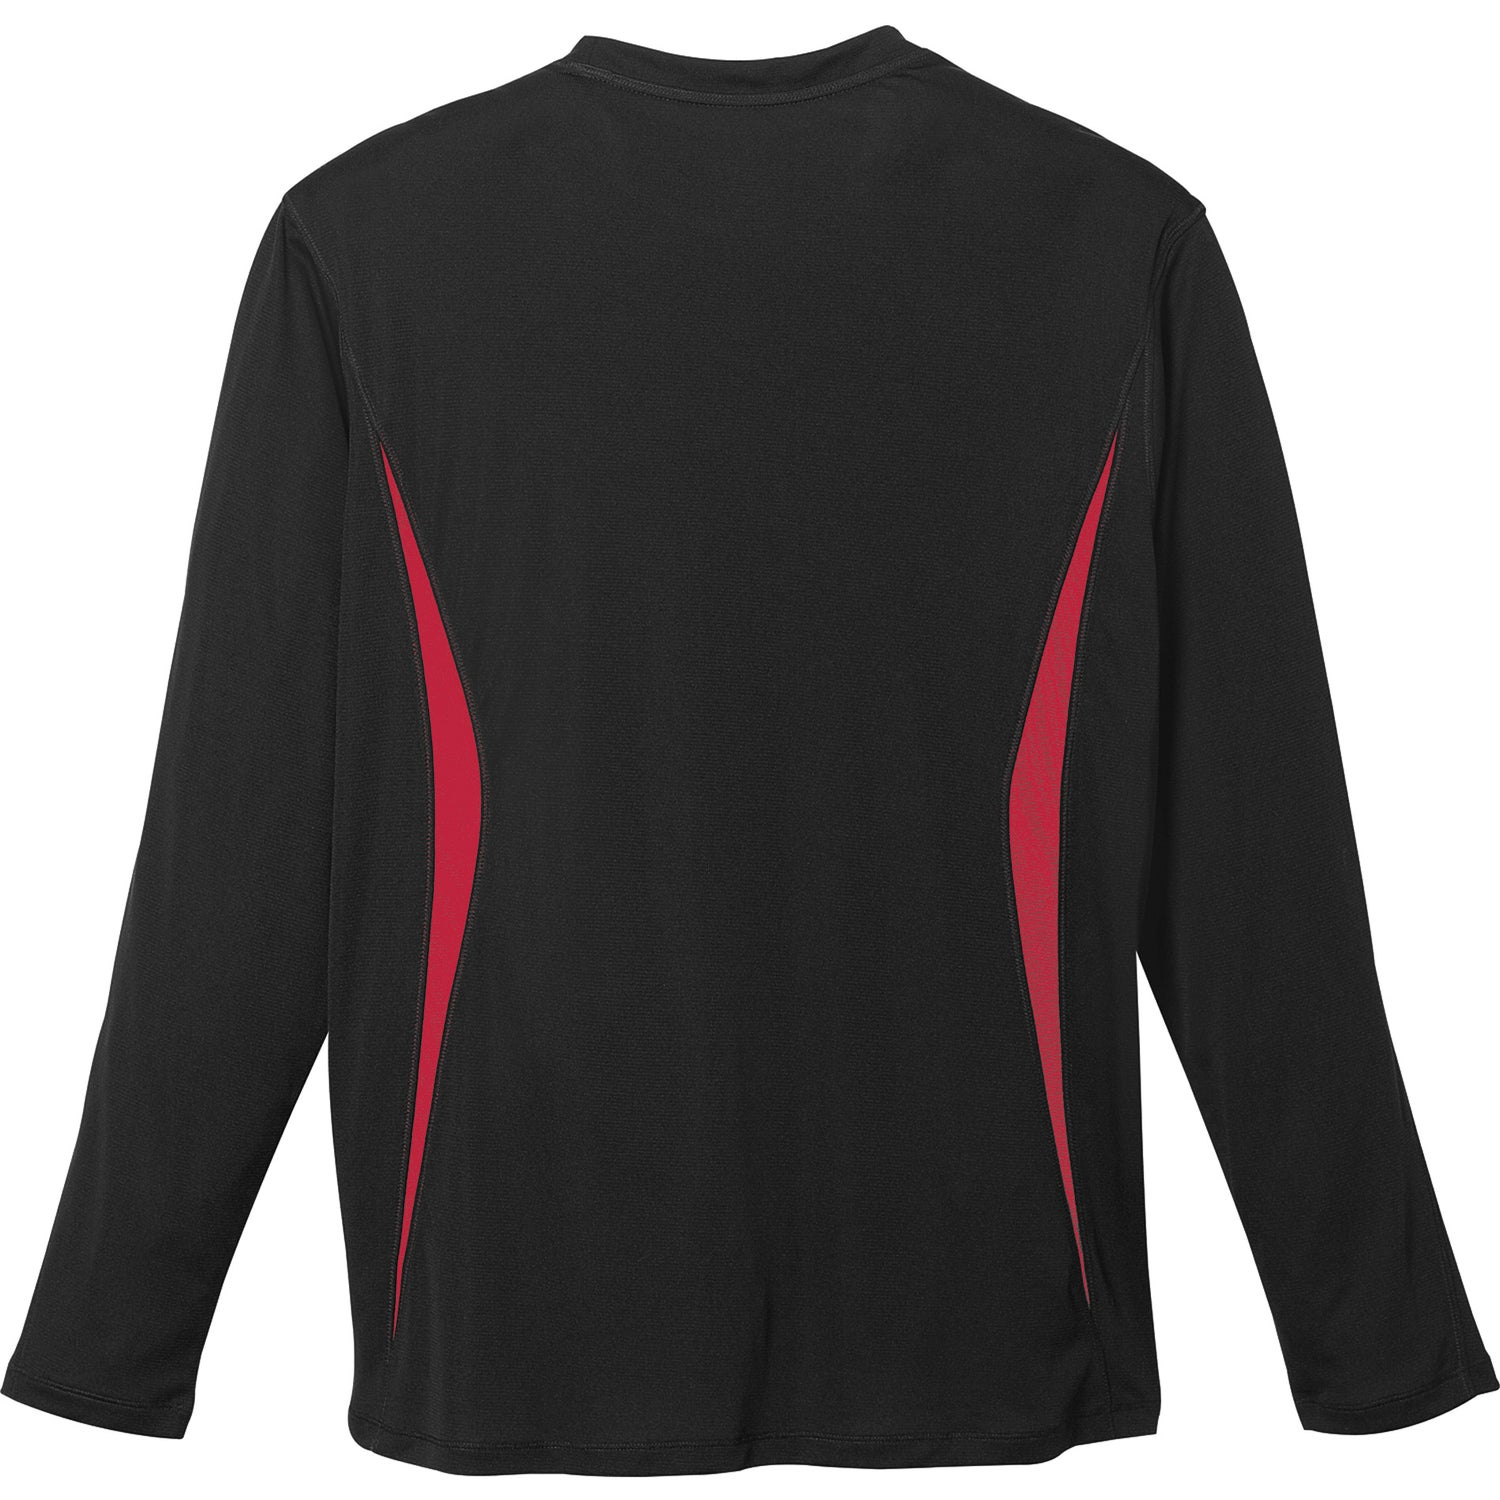 Kemah long sleeve tech tee by trimark men 39 s long for Personalized long sleeve t shirts